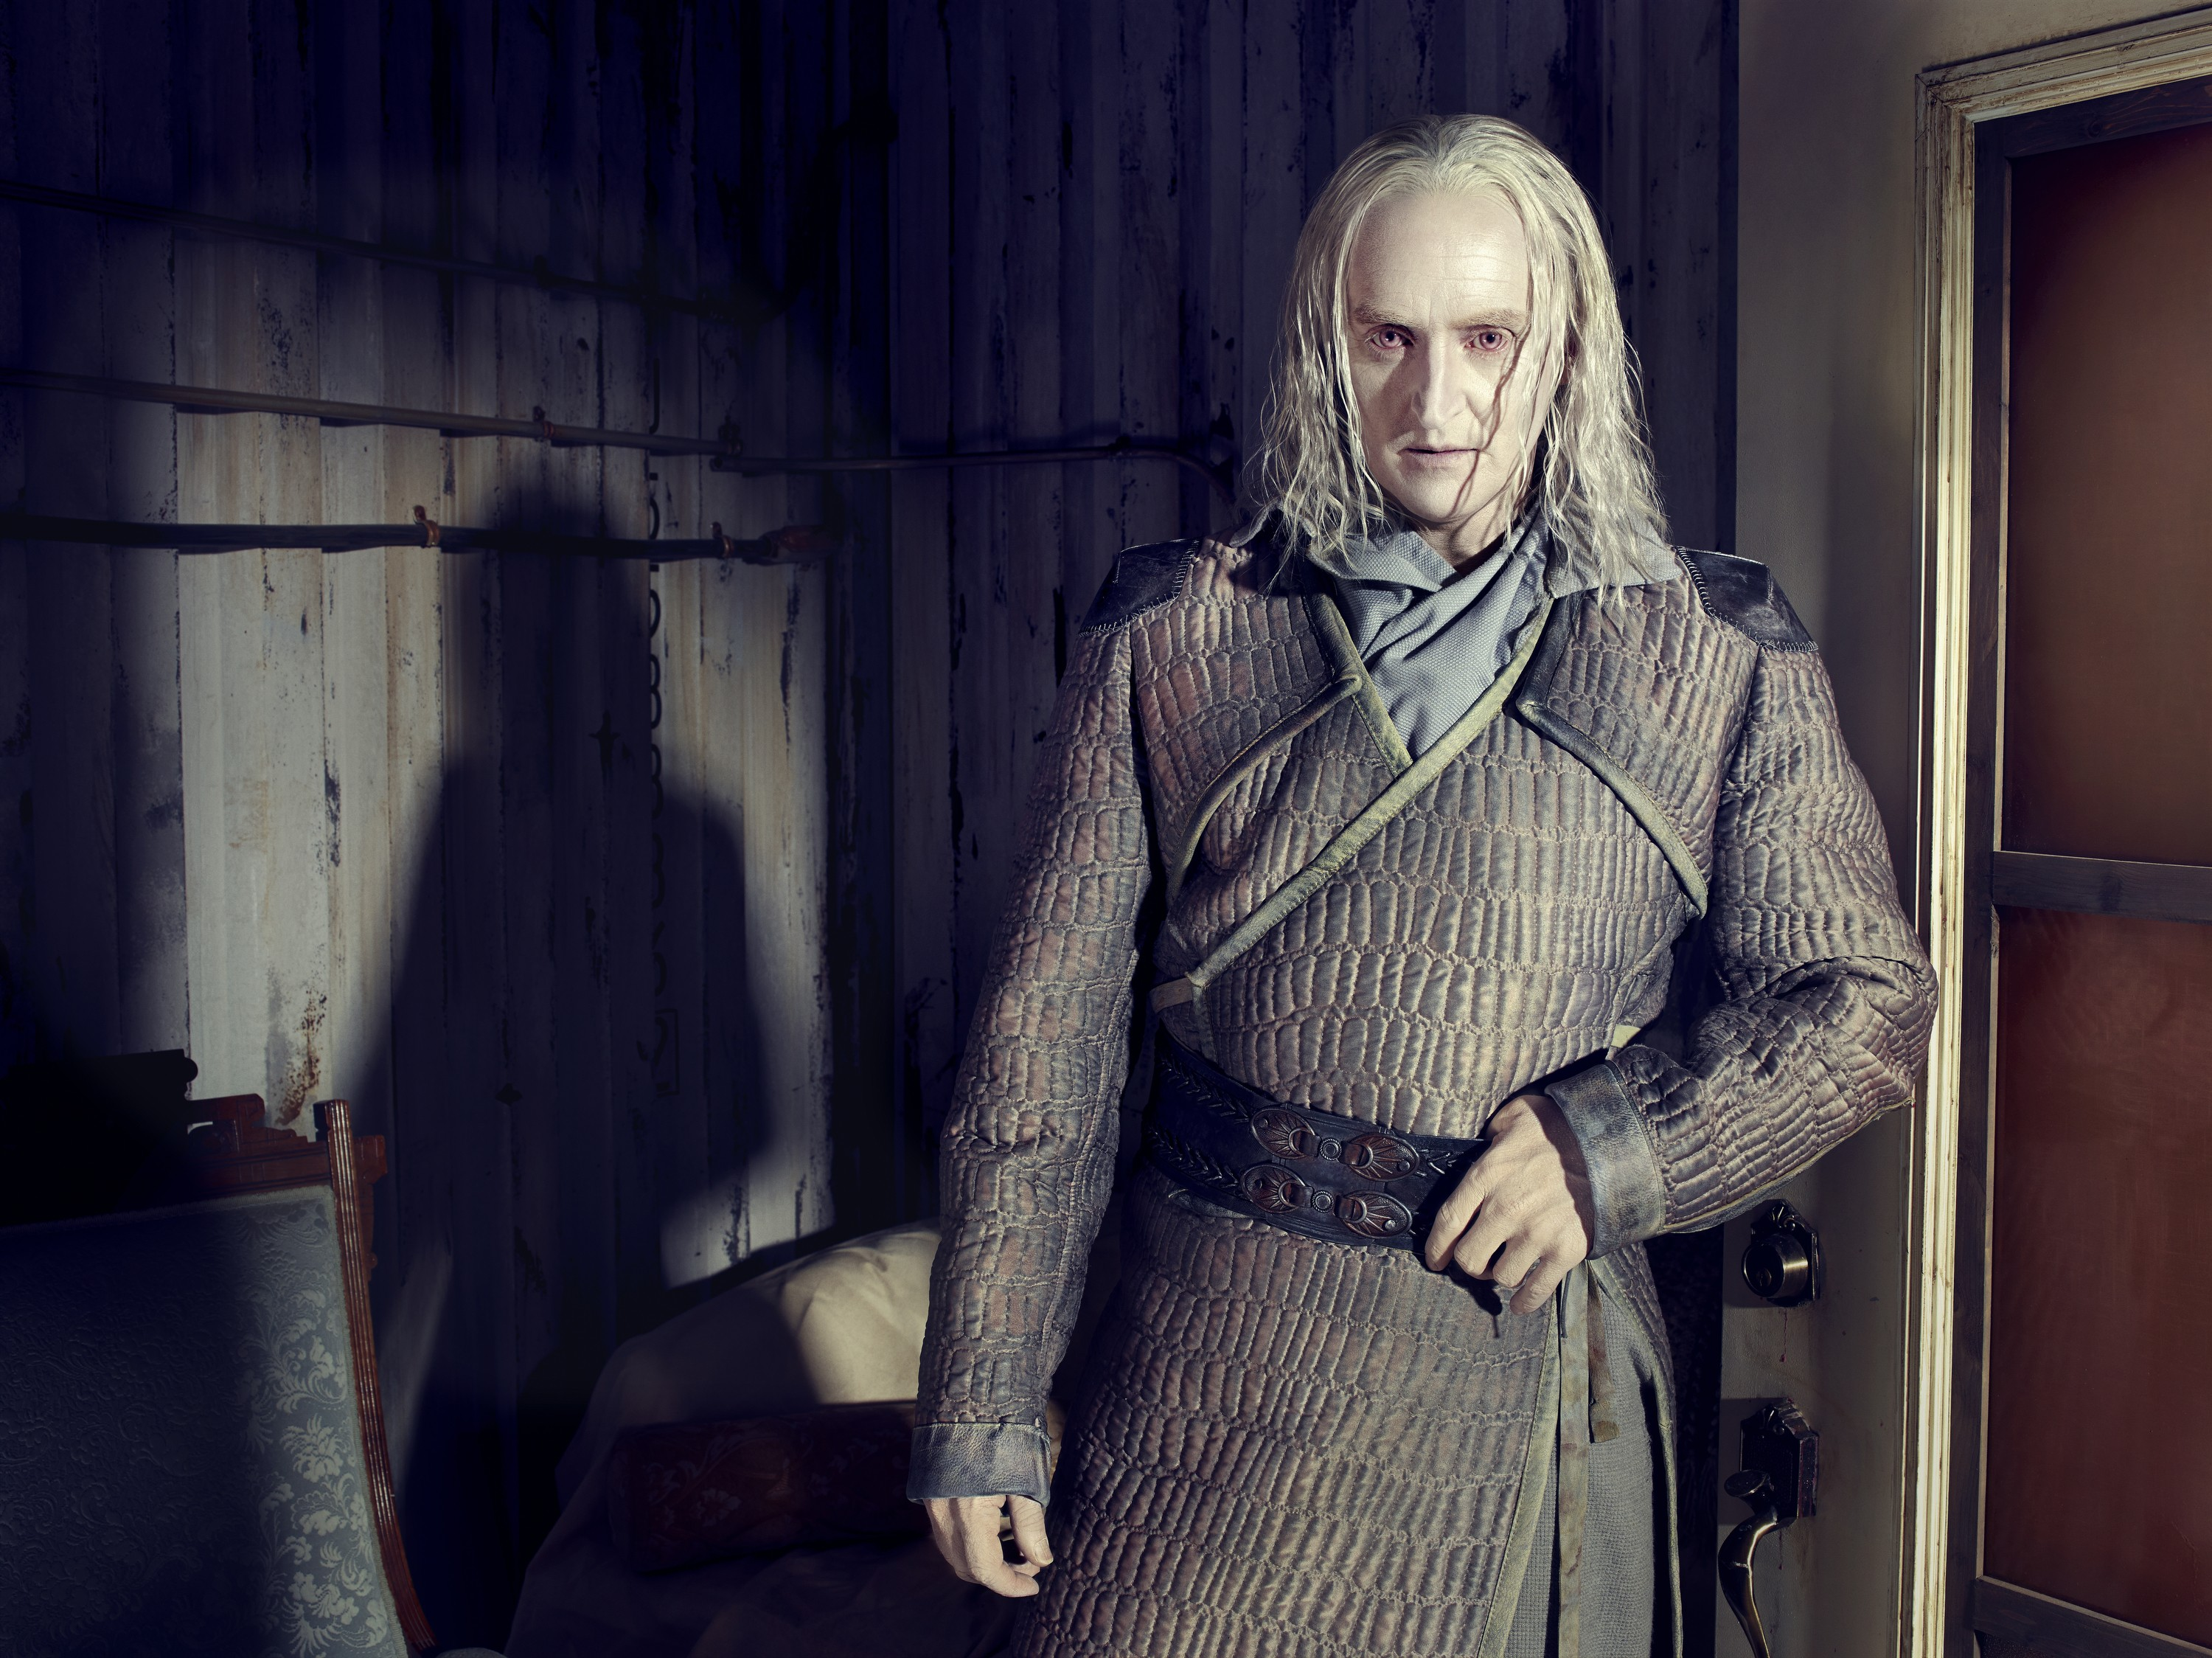 Defiance season 2 - Tony Curran as Datak Tarr